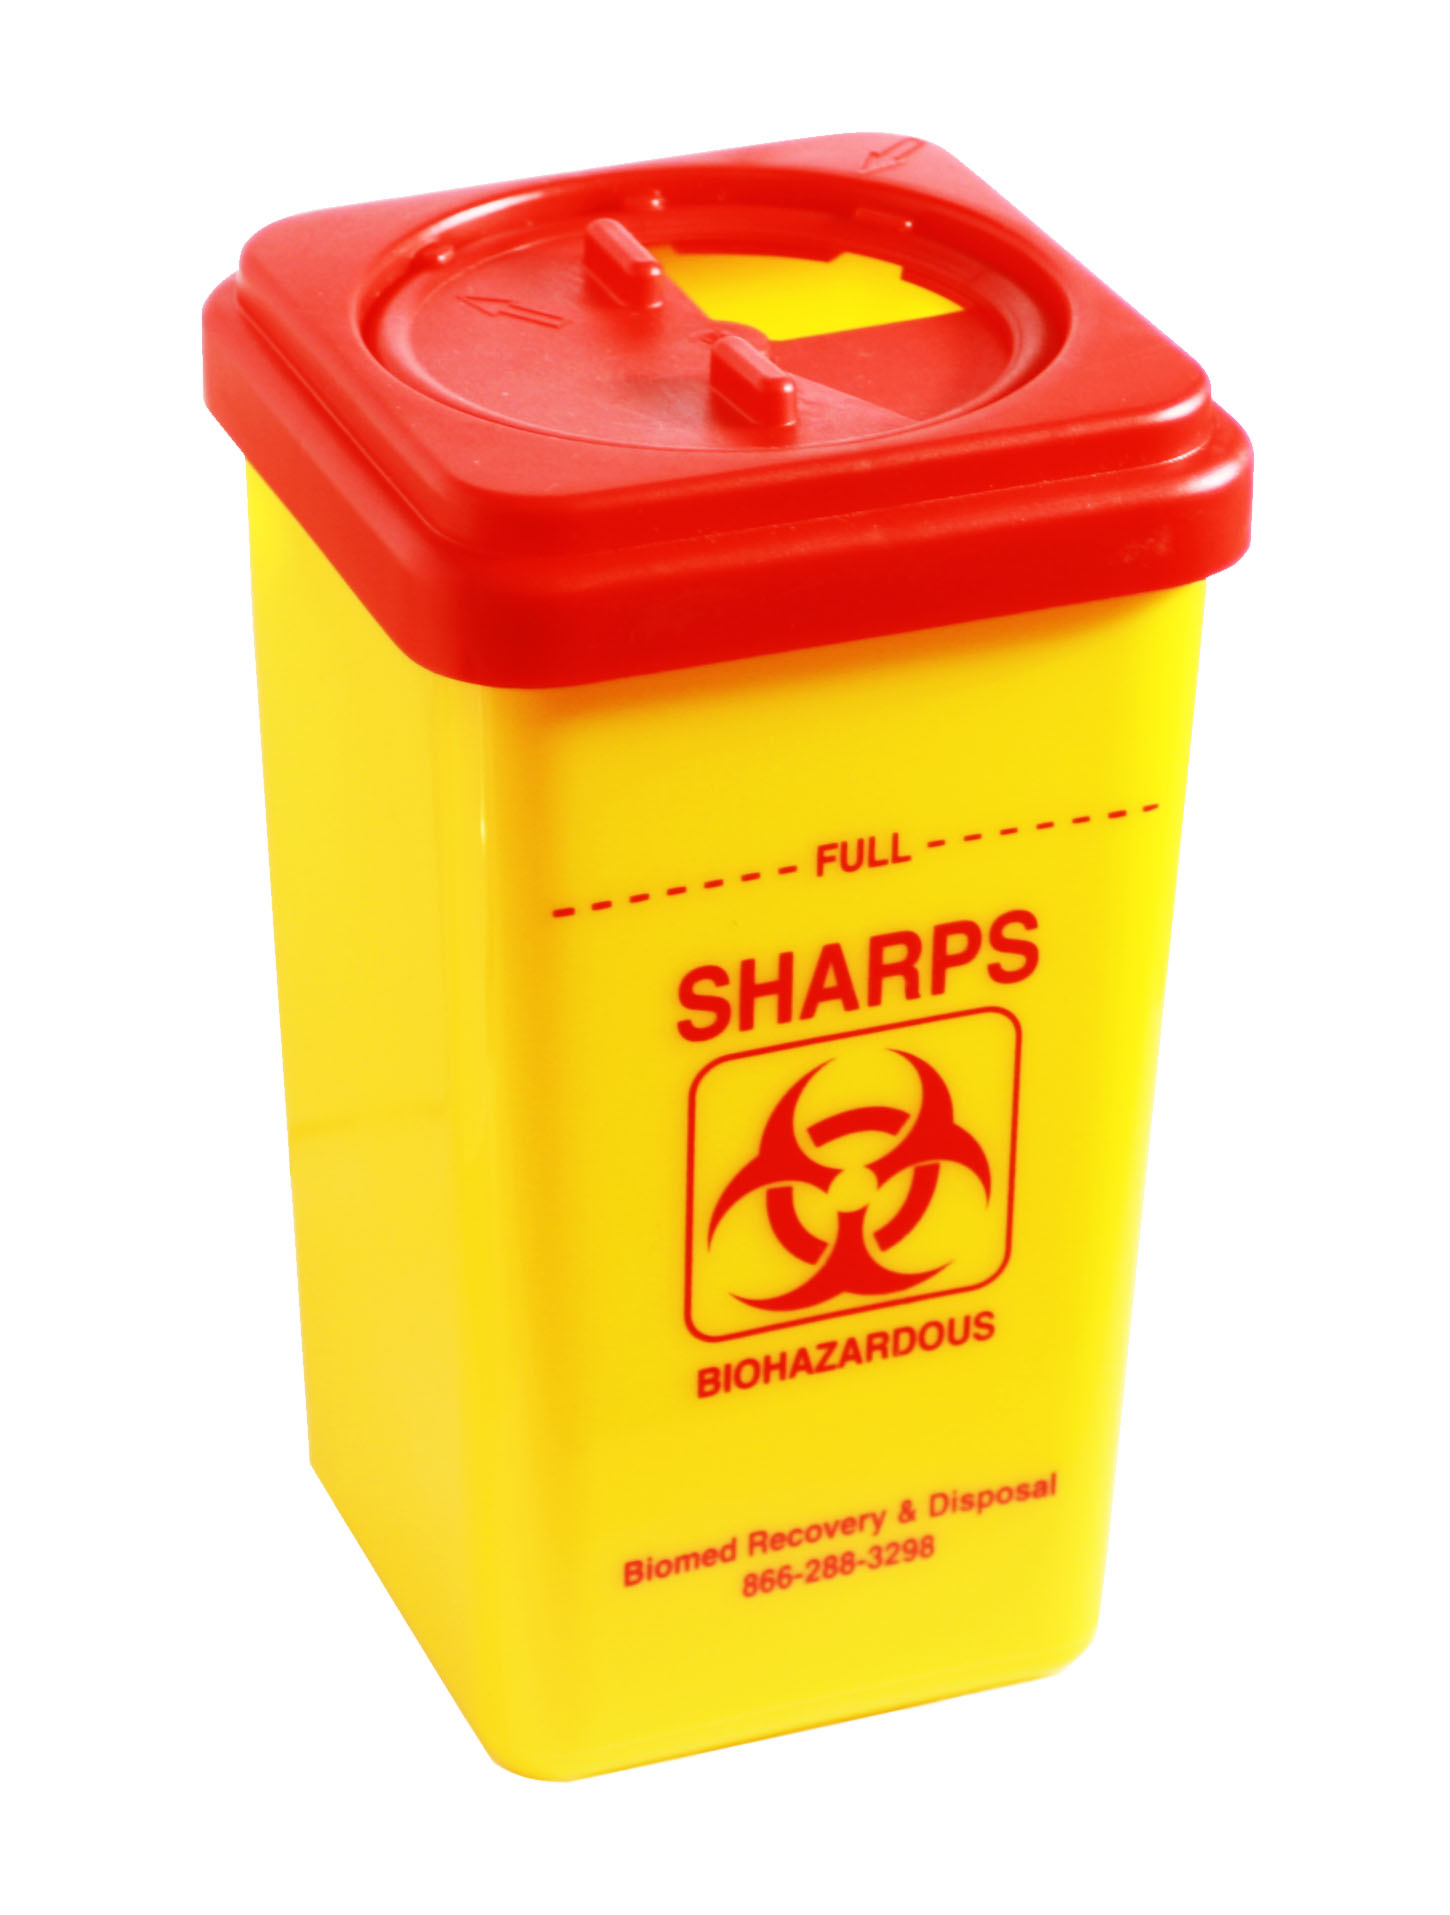 sharps waste mississauga